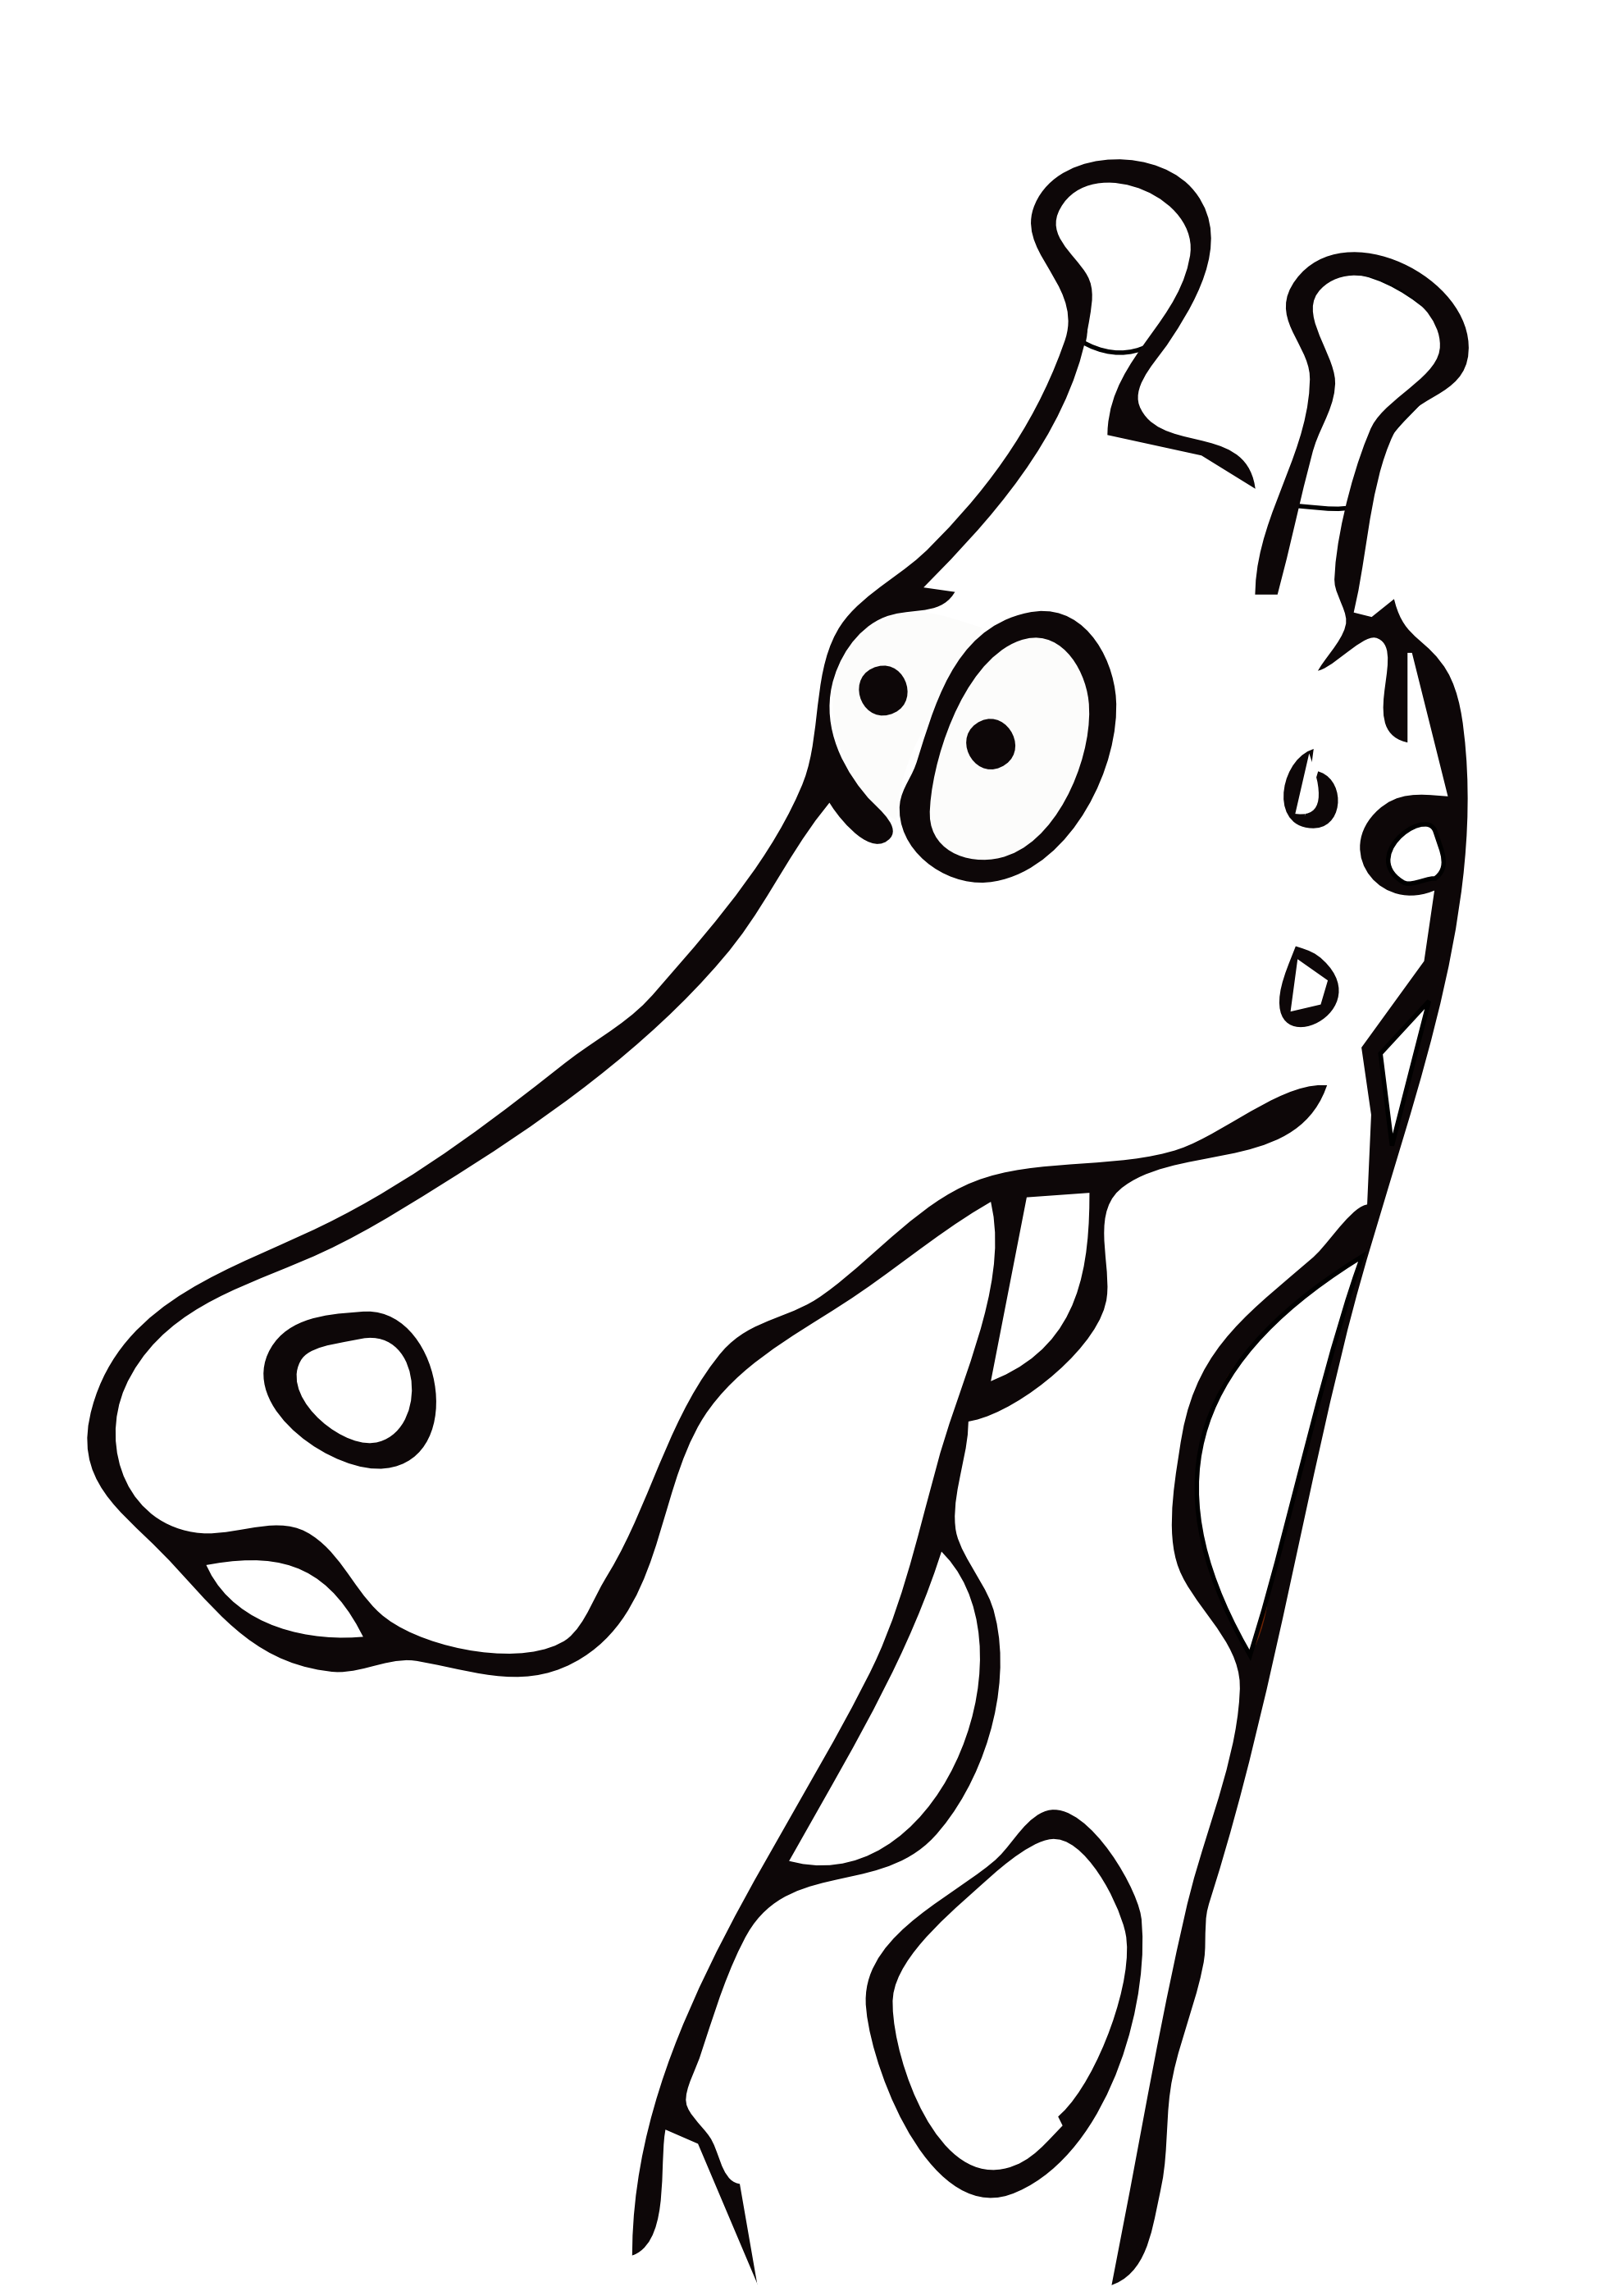 Giraffe heart clipart picture freeuse download Playscheme Day 2: The KnowsNot – apple seed picture freeuse download